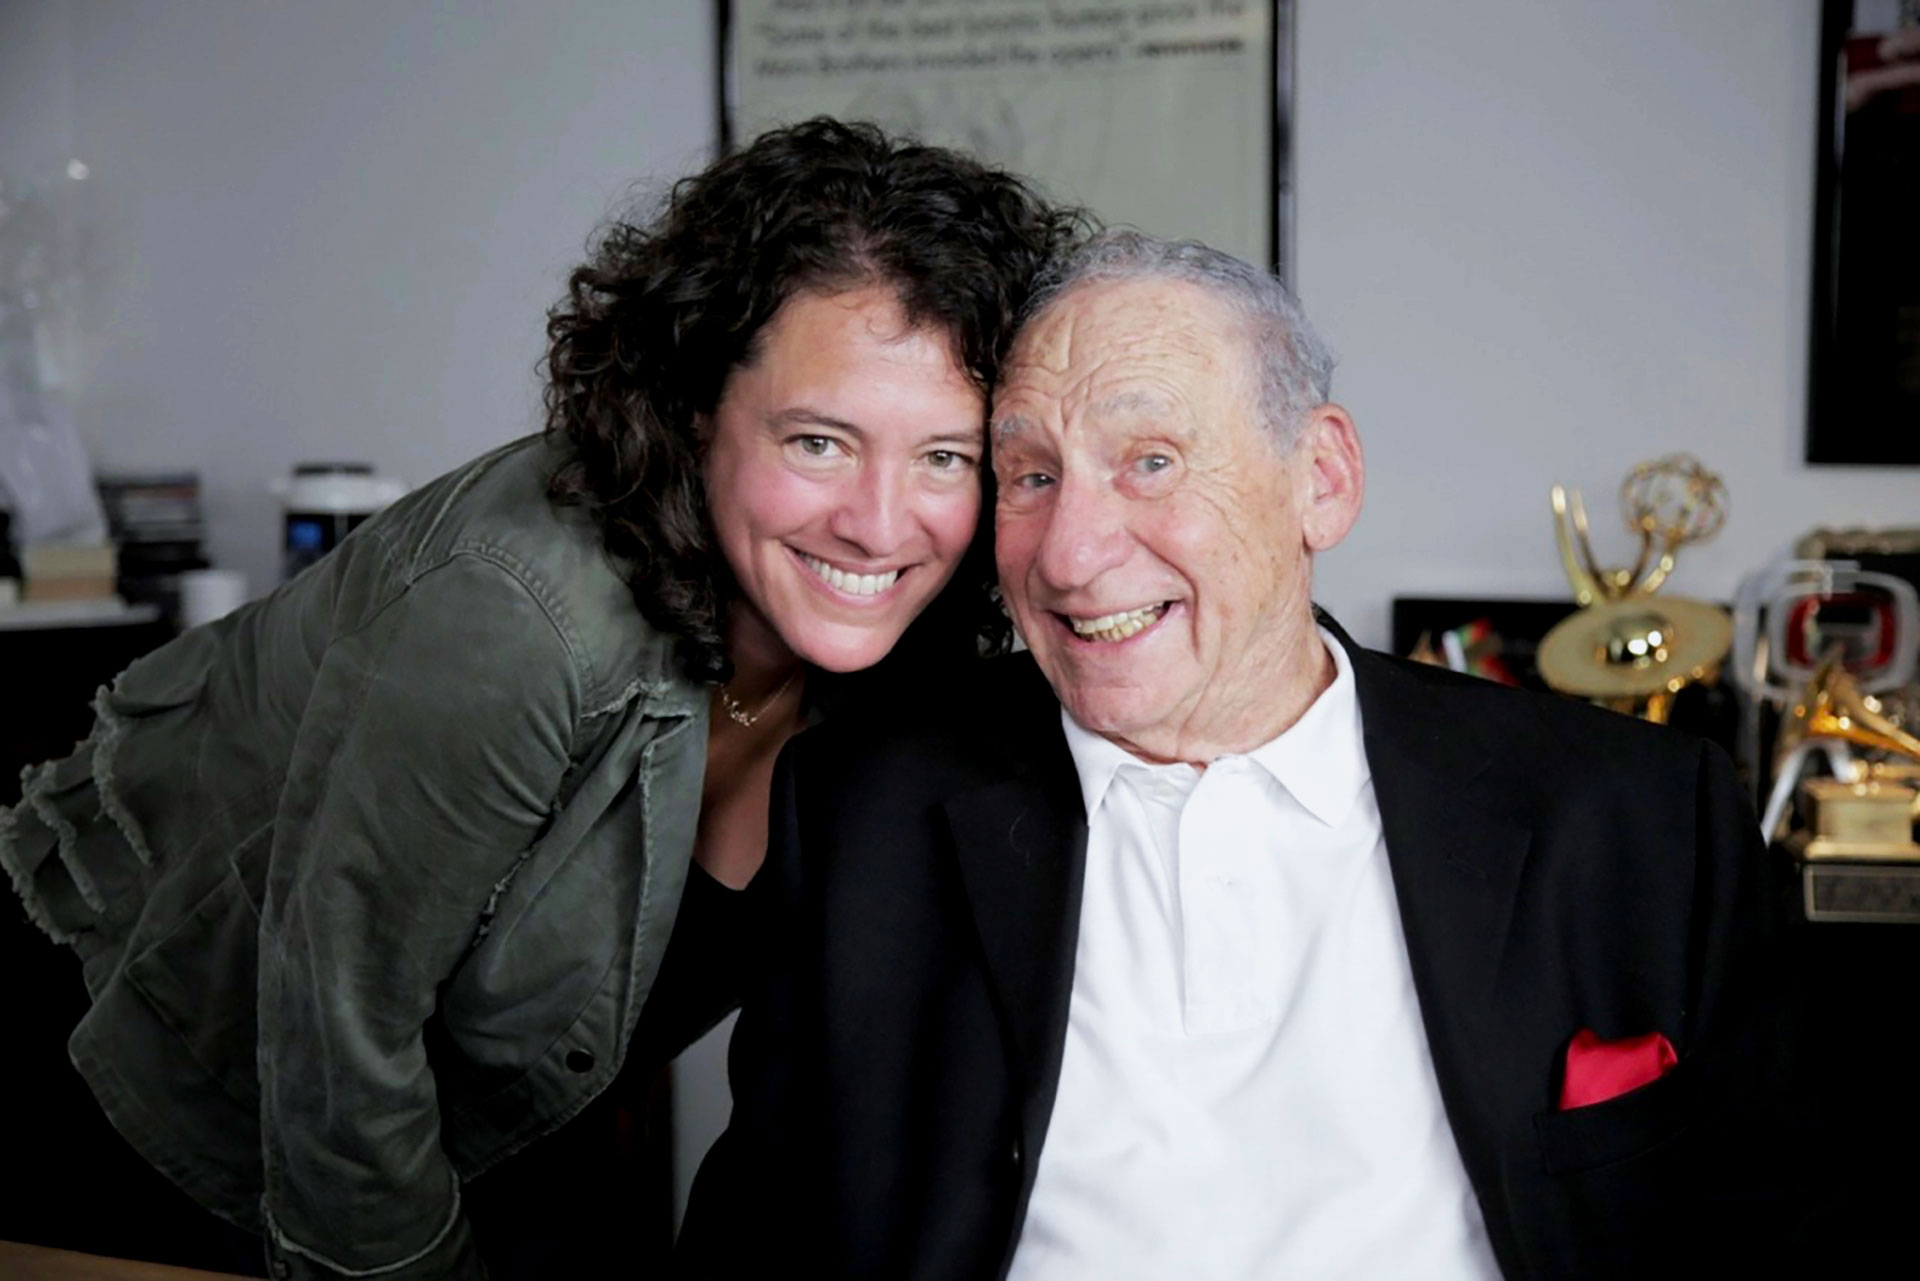 The Last Laugh filmmaker Ferne Pearlstein with director/writer/comedian Mel Brooks